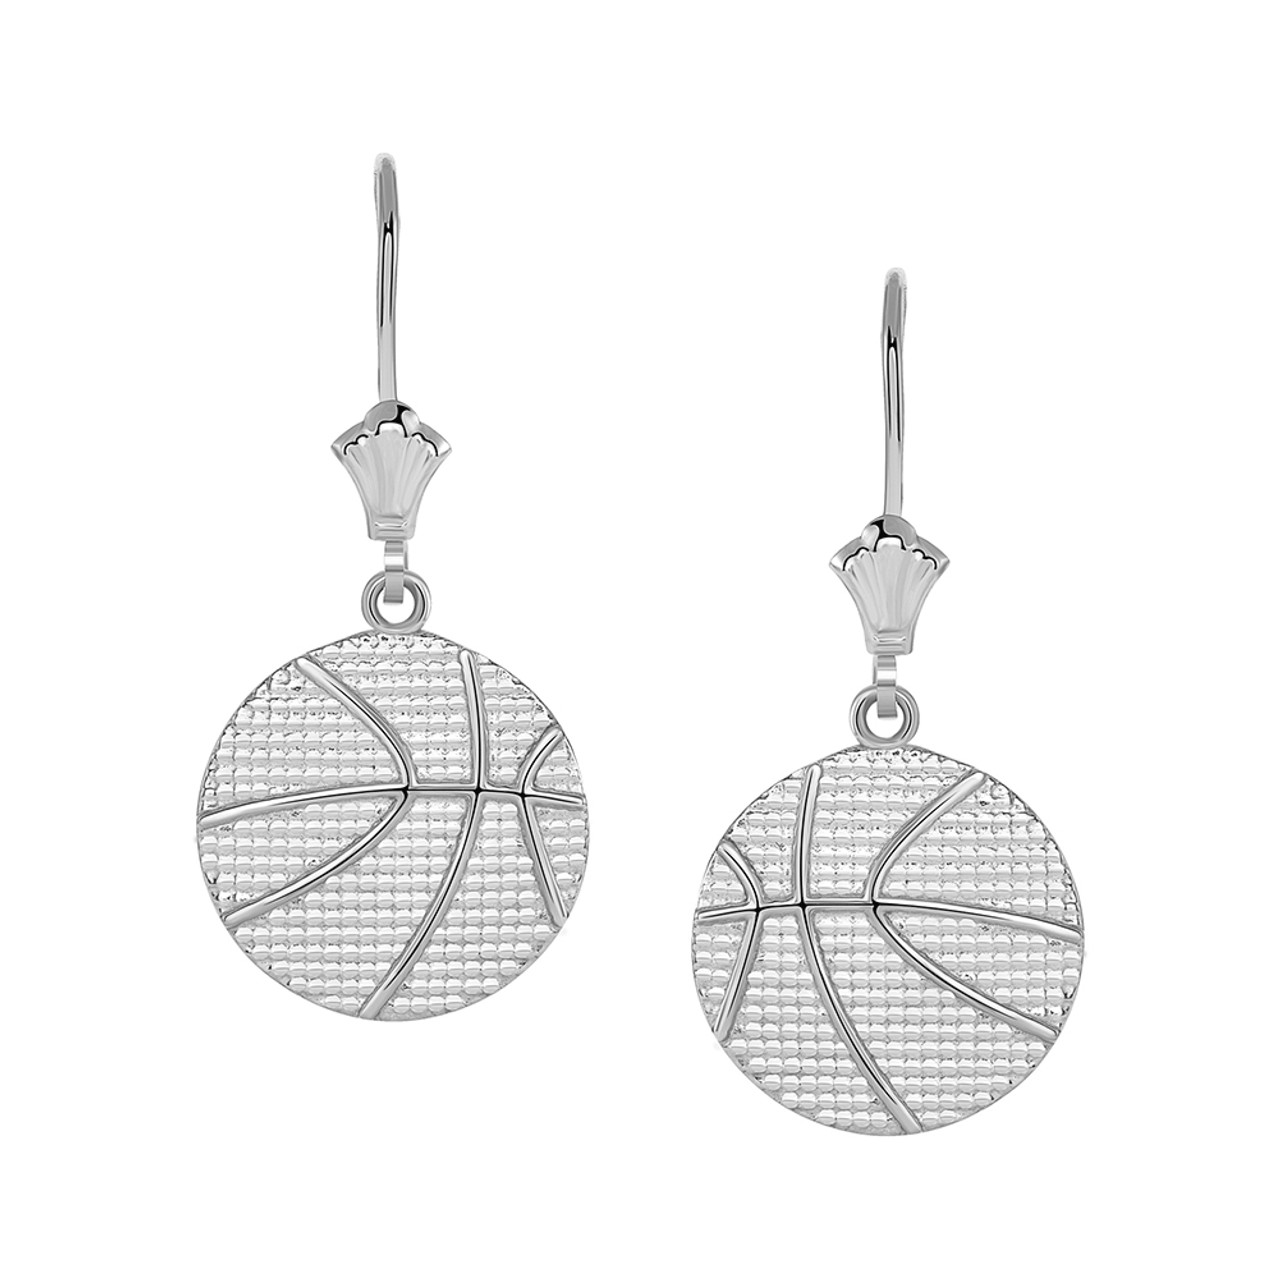 a64c1ee655cbb Basketball Leverback Earrings in Sterling Silver